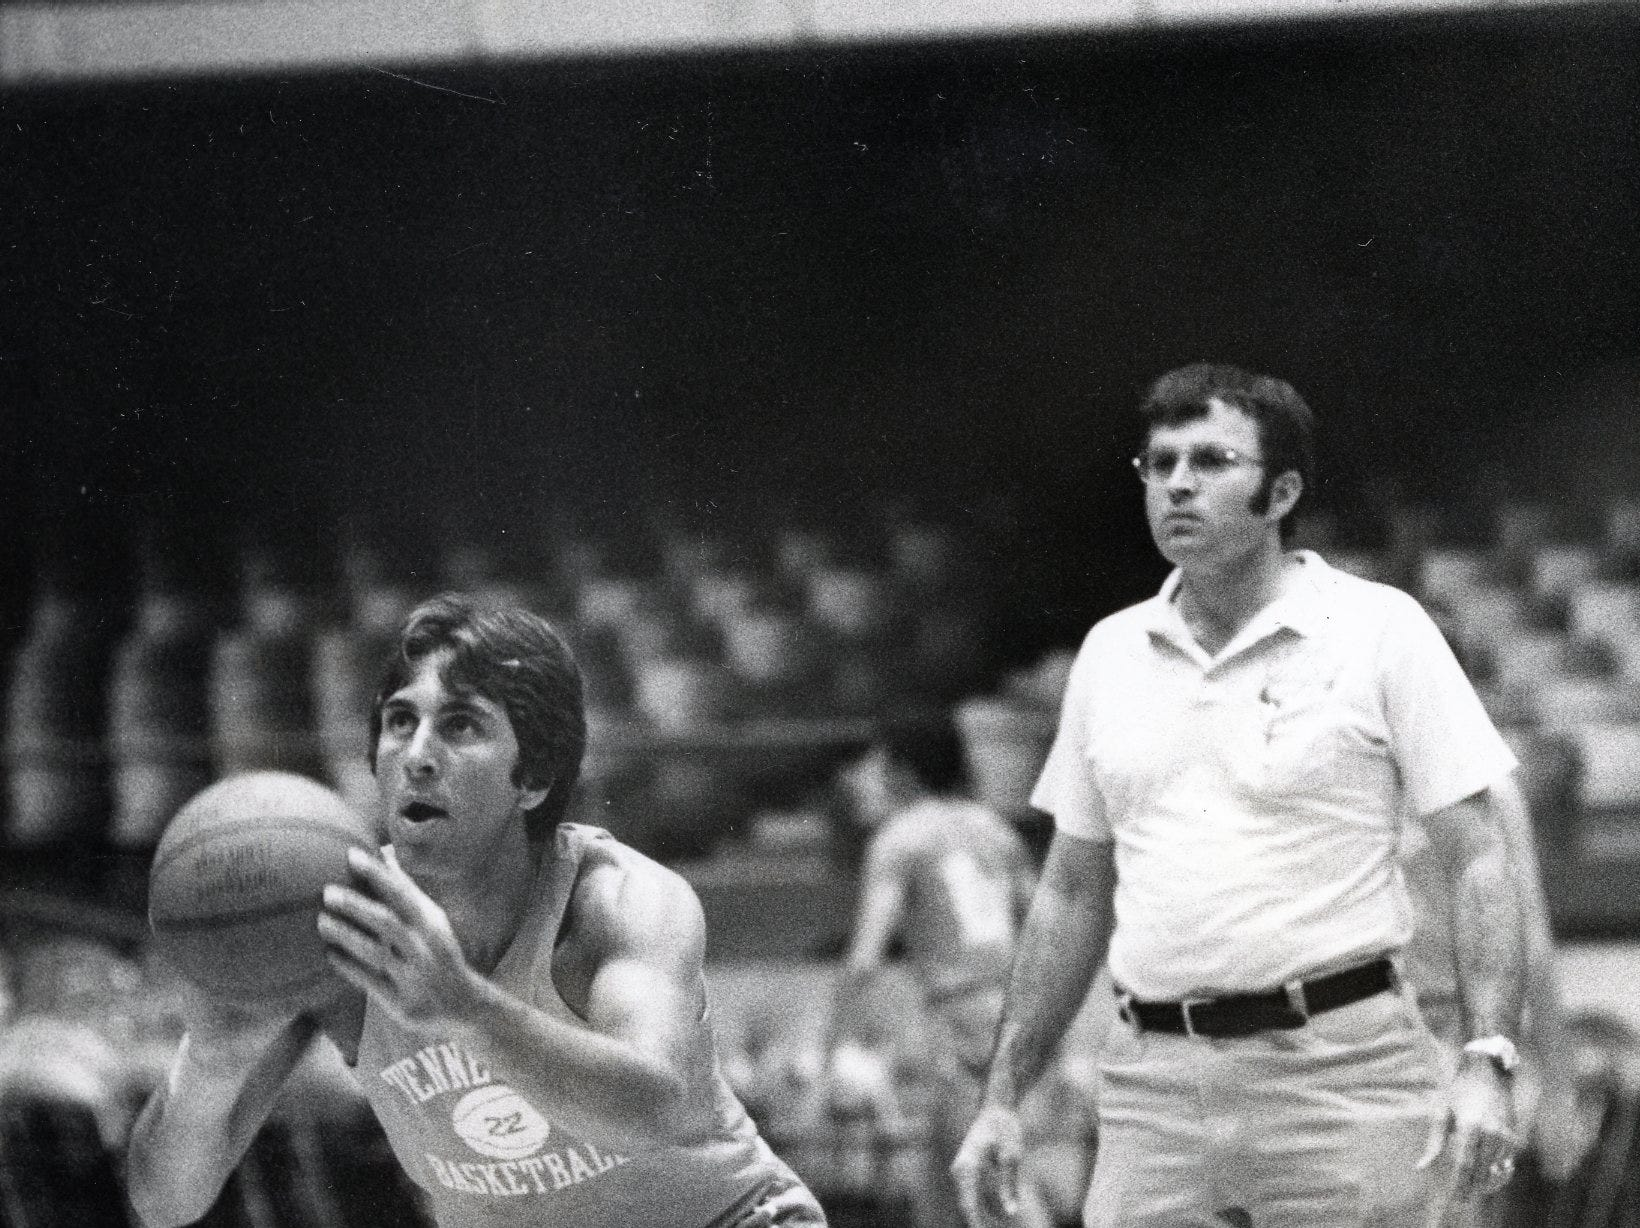 Ernie Grunfeld works on free throws during a December, 1974 practice at UT.